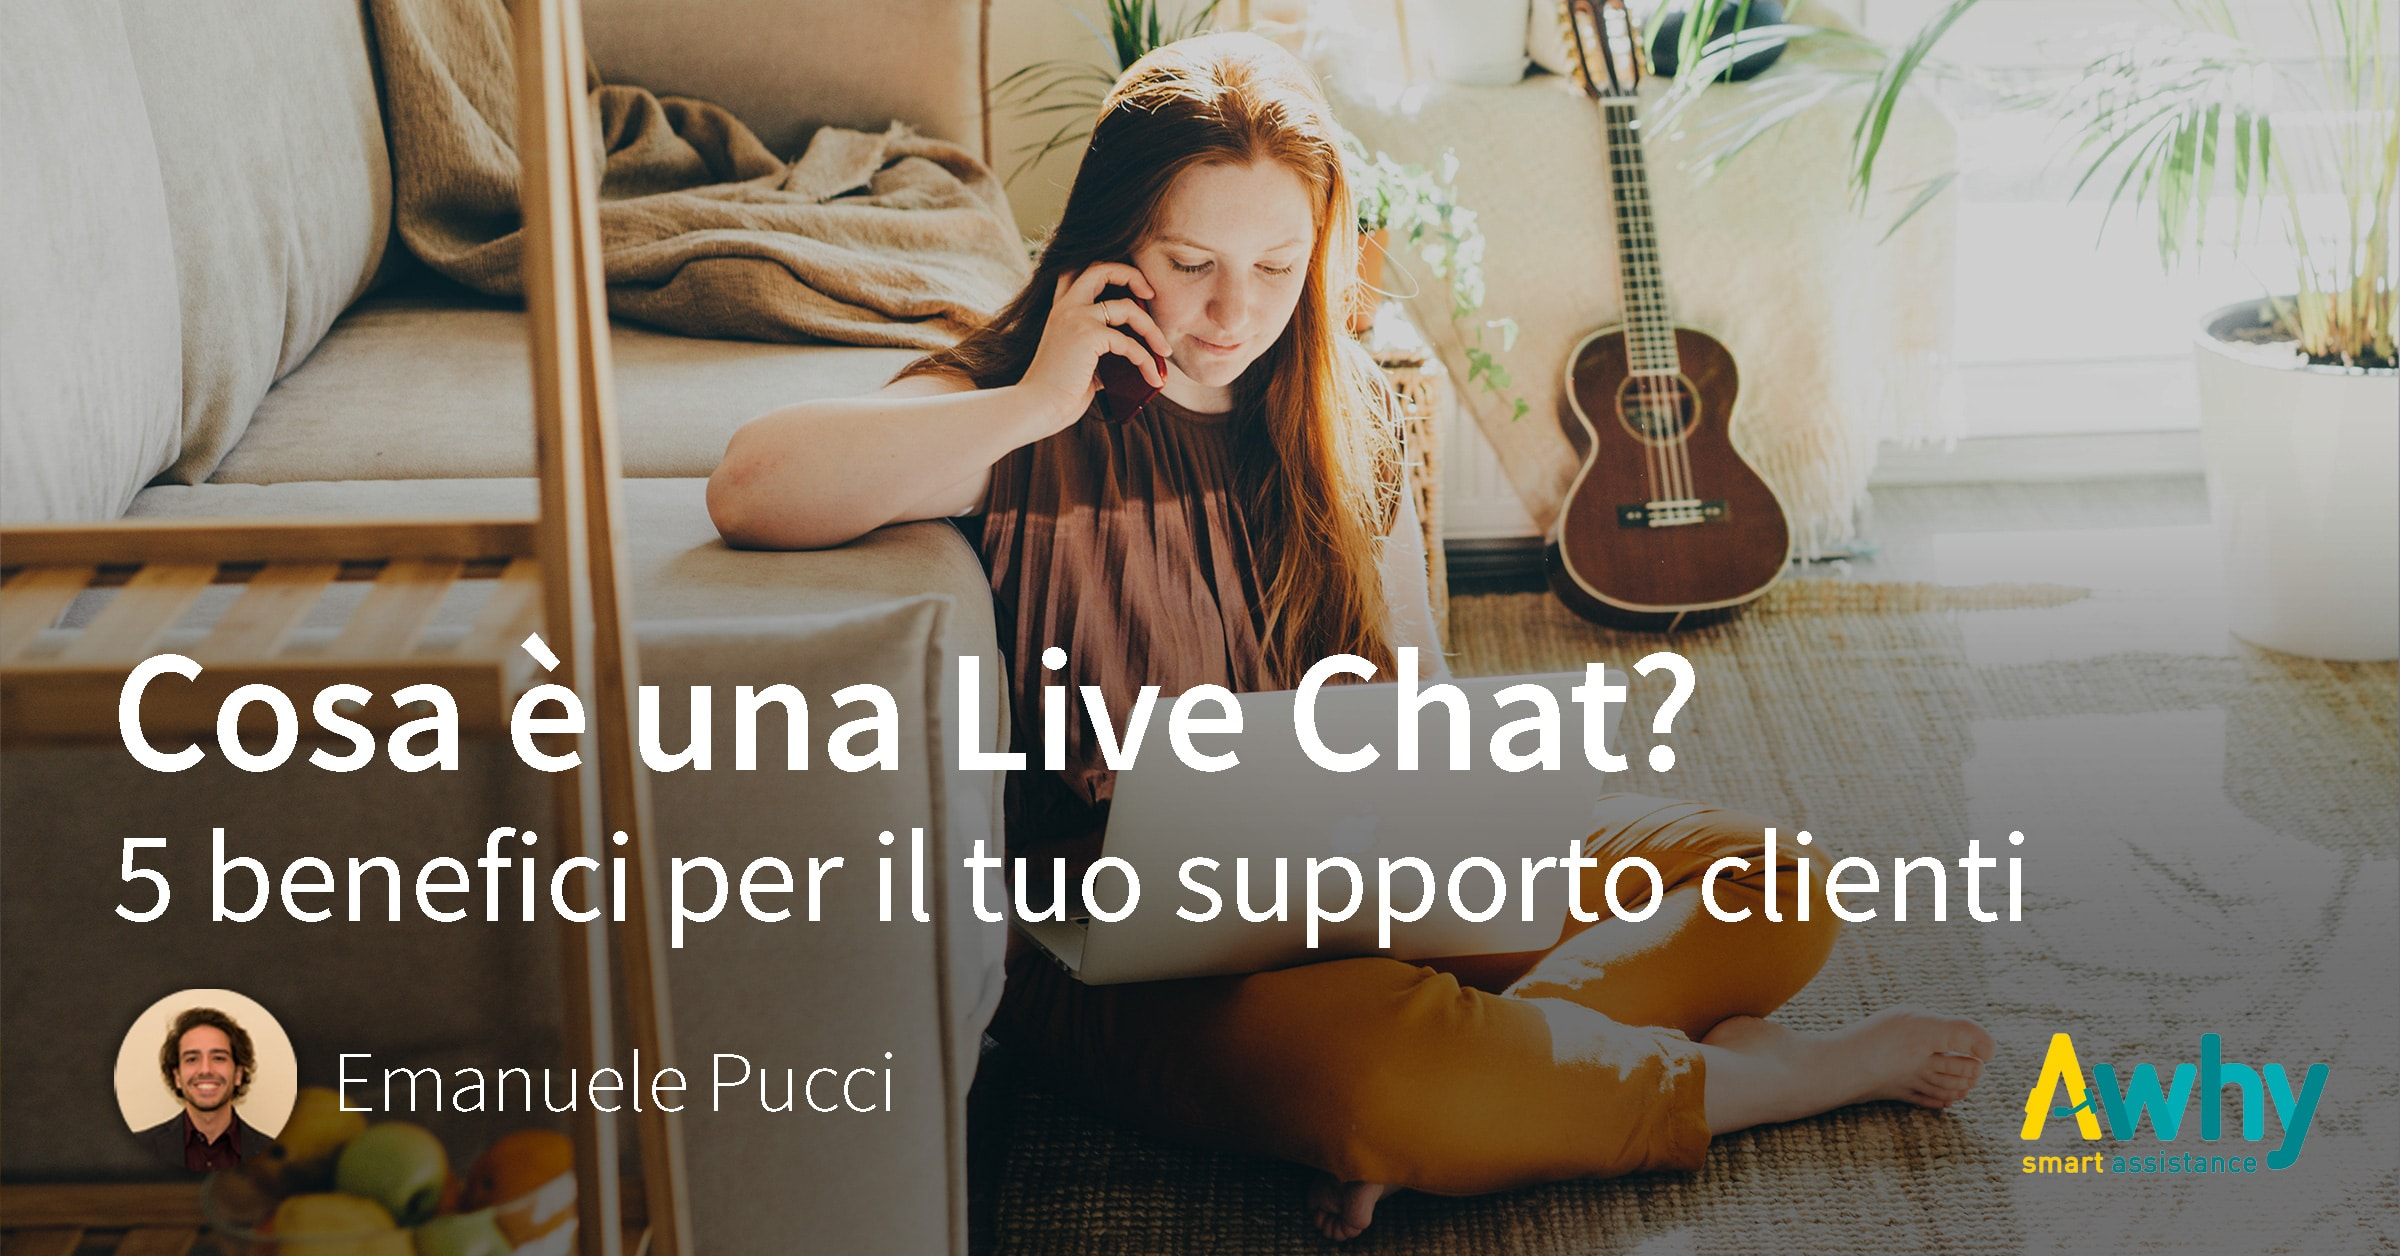 Live Chat - 5 benefici